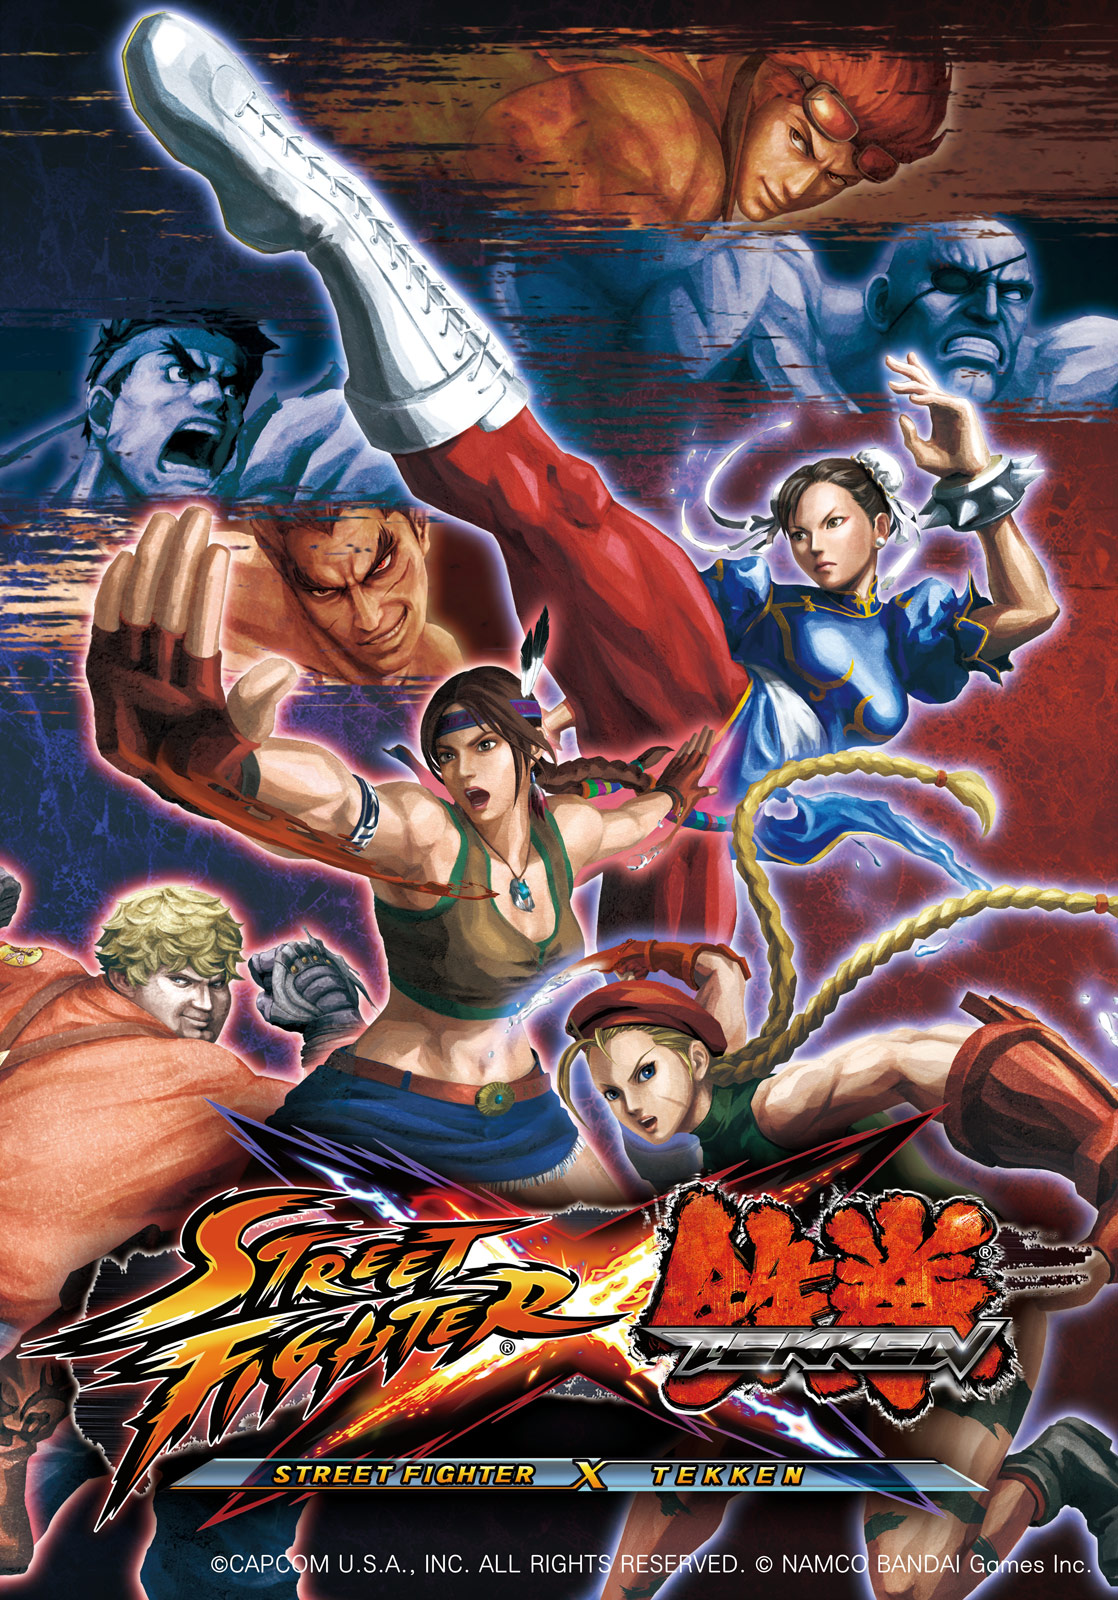 [SFXT] Défi 5on5 – WatchDaMatch X eLive au Get Rich Or Die Fighting, le 17 Mars 2012